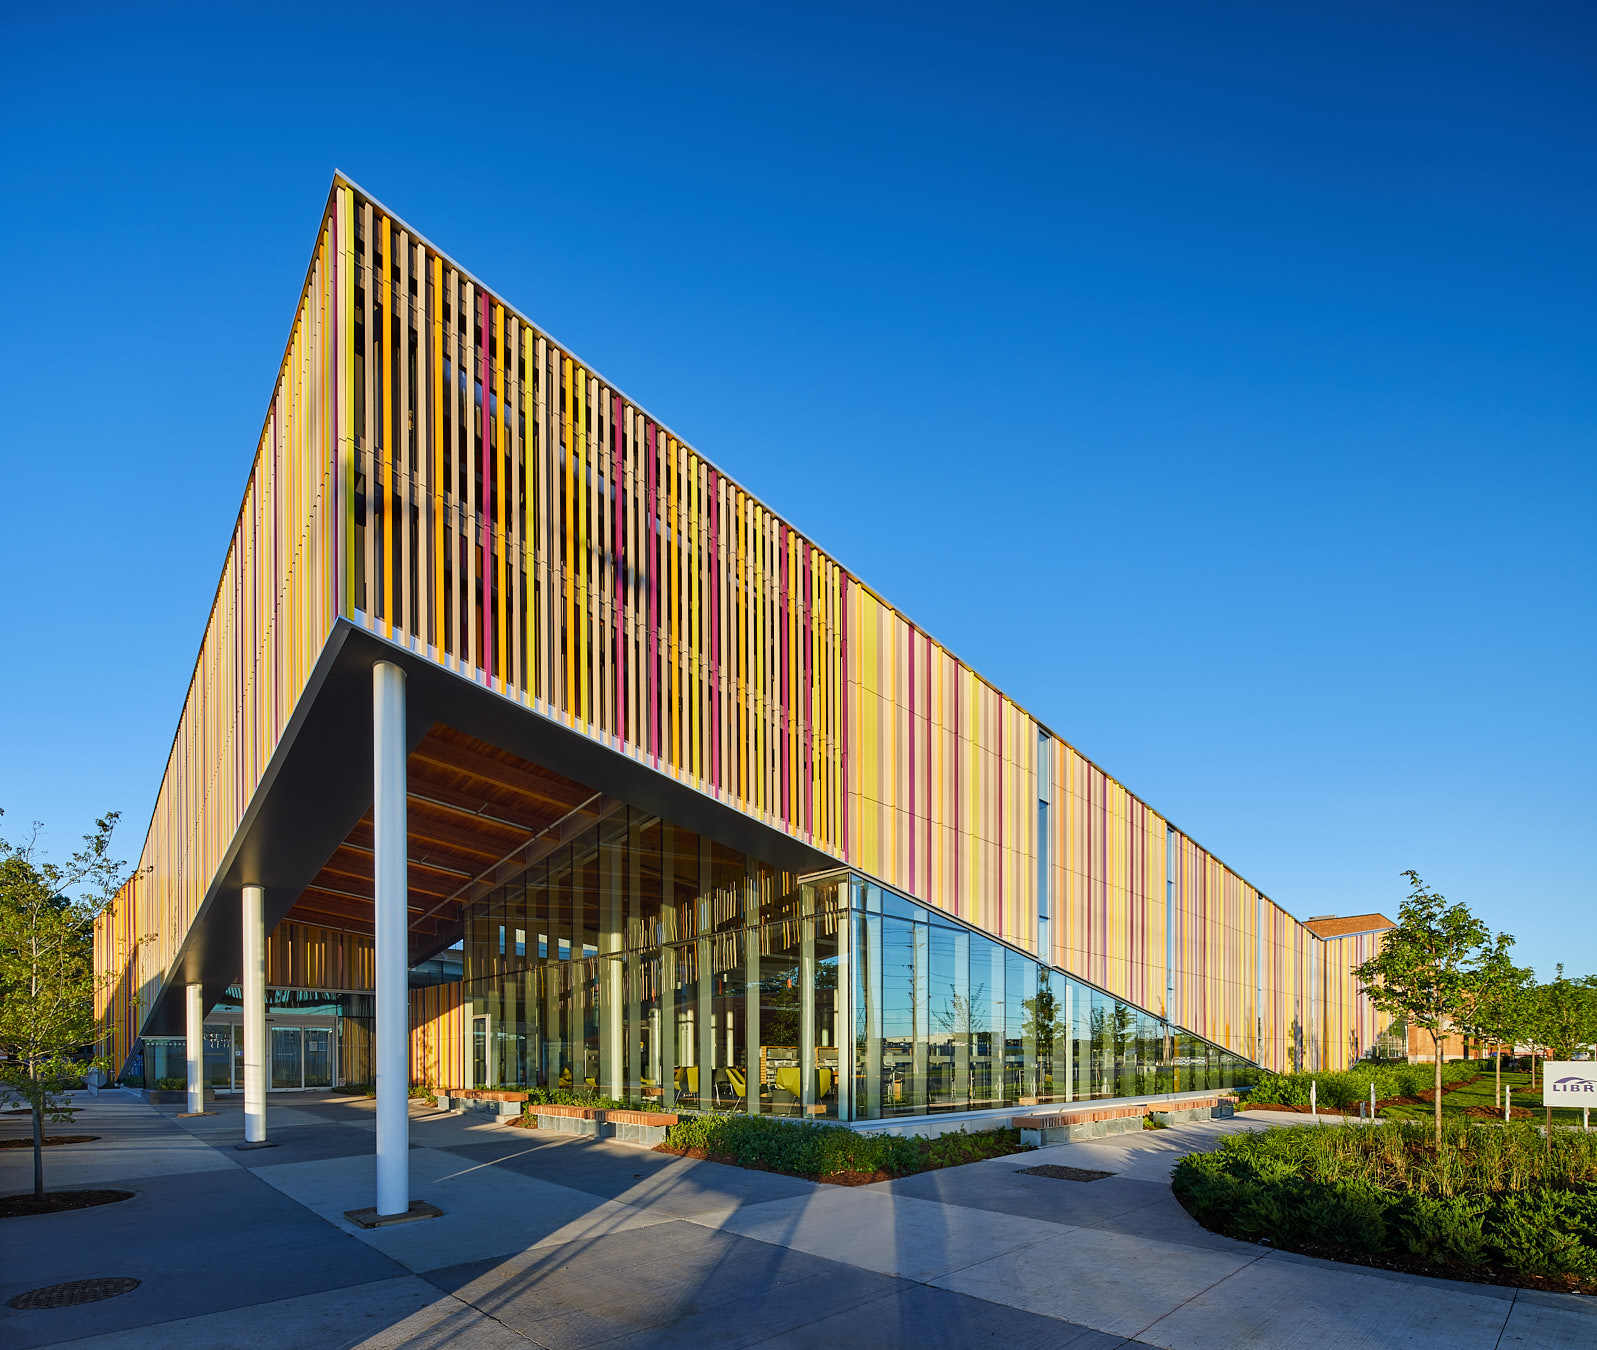 Albion library perkins will canada archdaily for Building design website